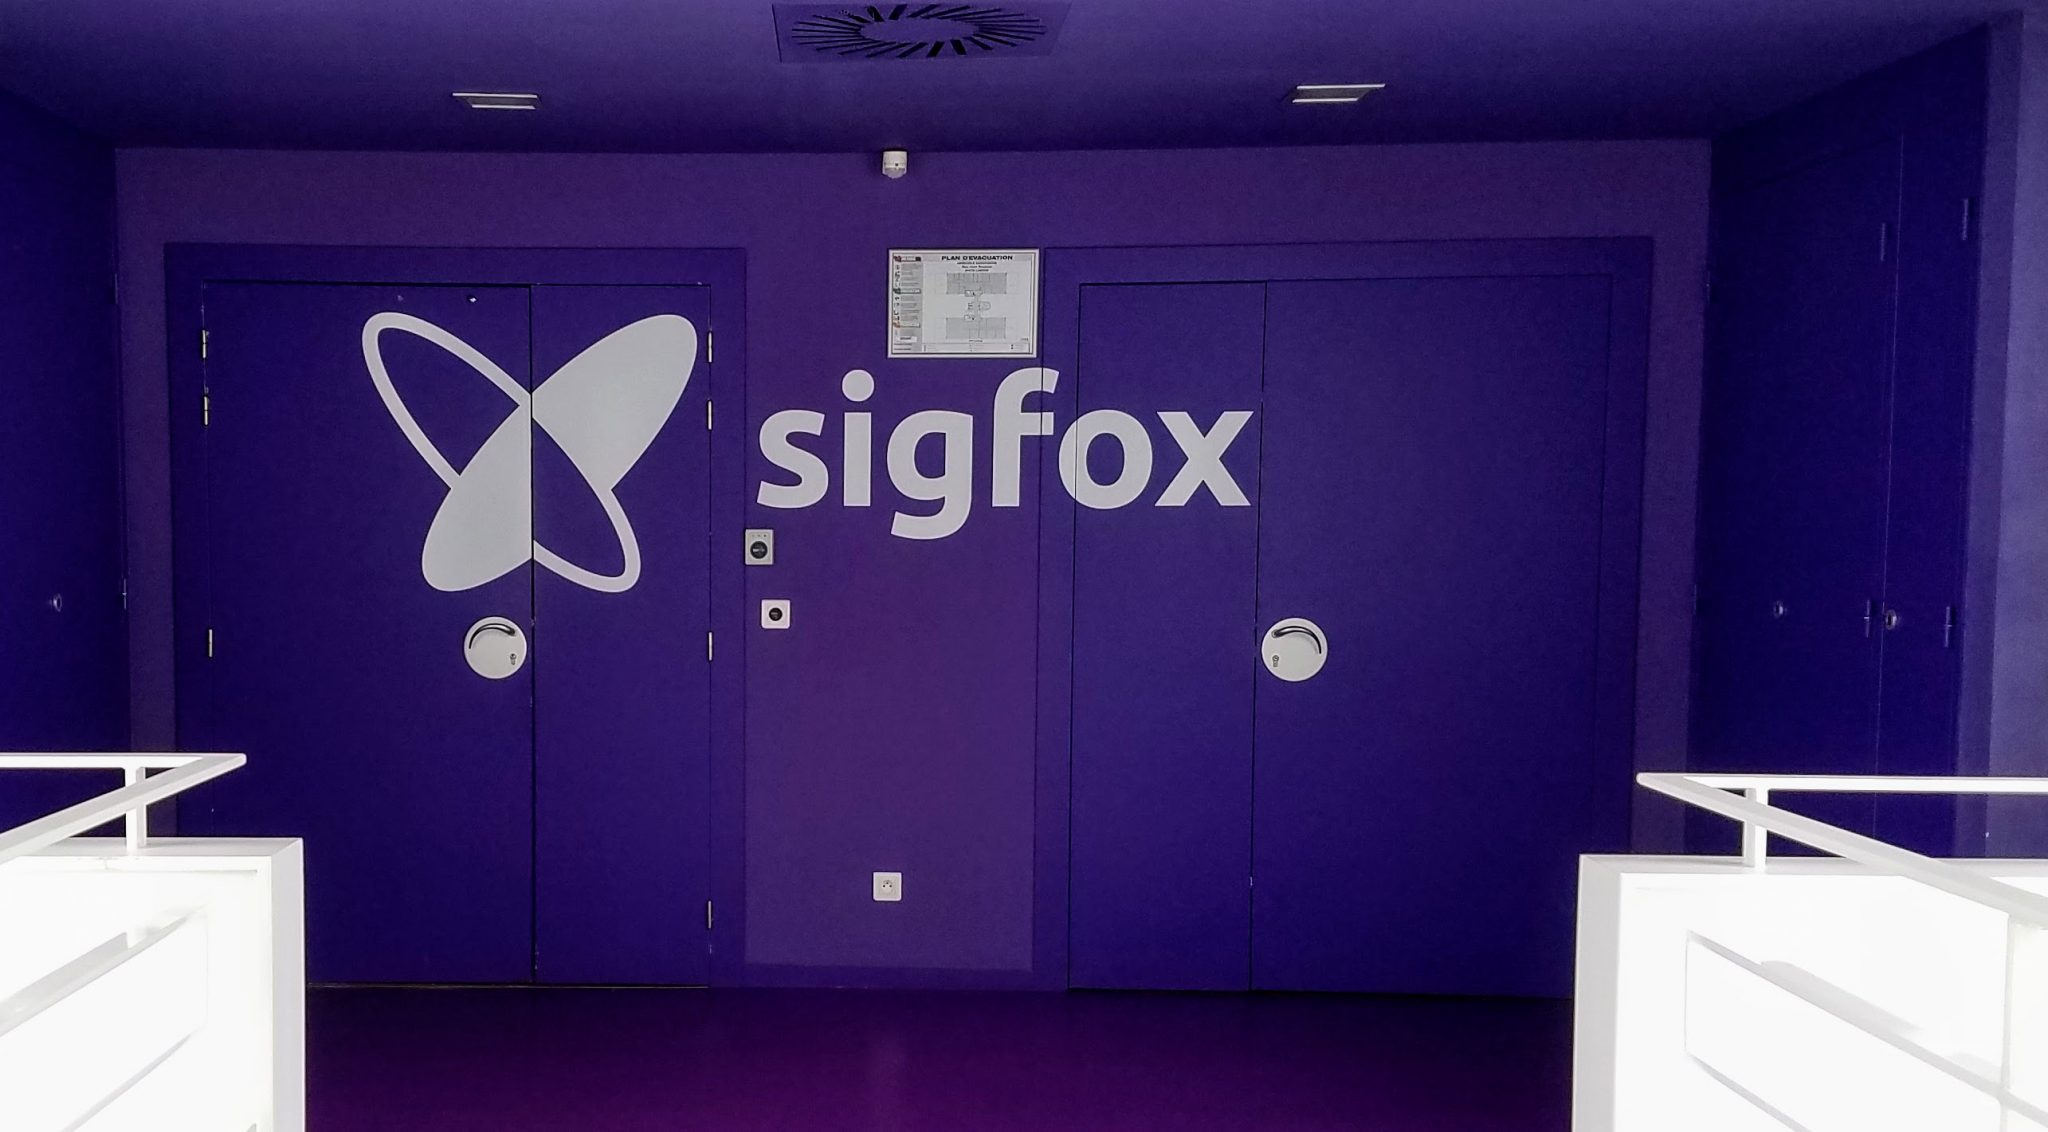 IoT arms race is on: #Sigfox promises 1bn connections in three years